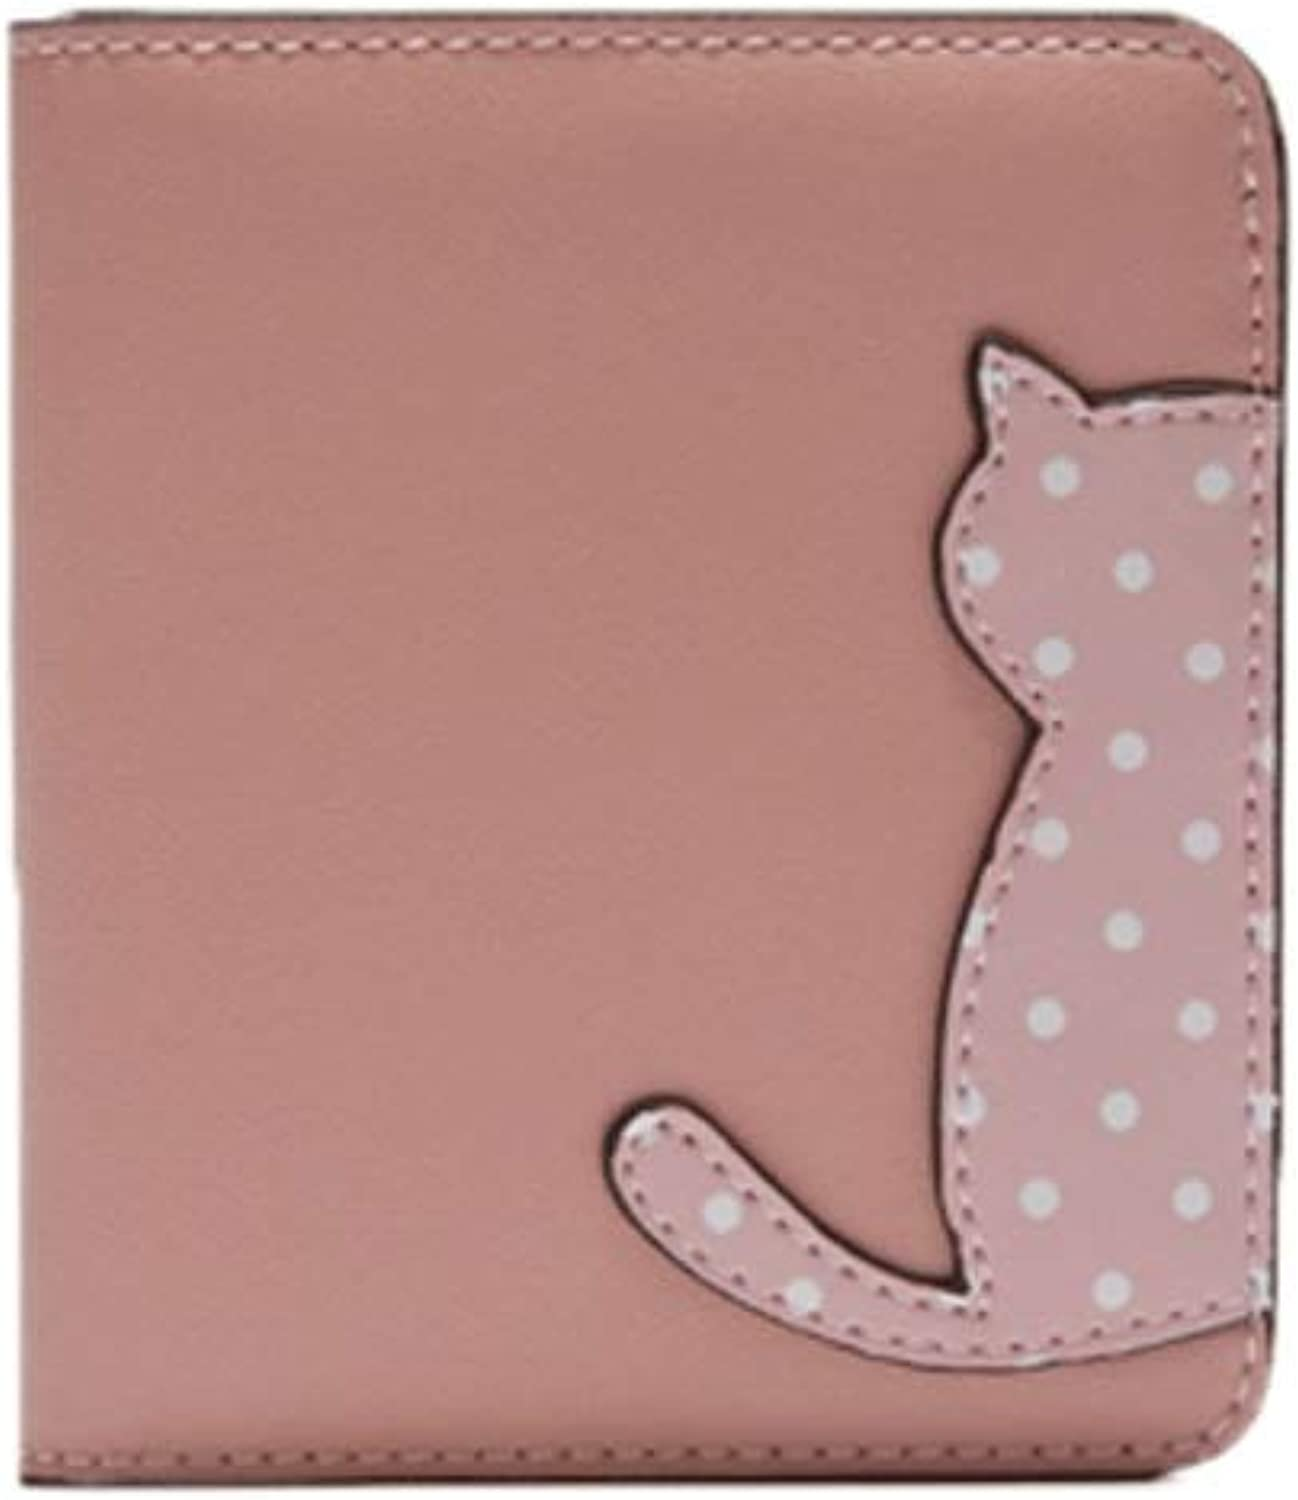 5GHjkj Small Fresh Style Ladies Wallet Cute Cat Short Paragraph Clutch Bag MultiCard Large Capacity Coin Purse (color   Pink)